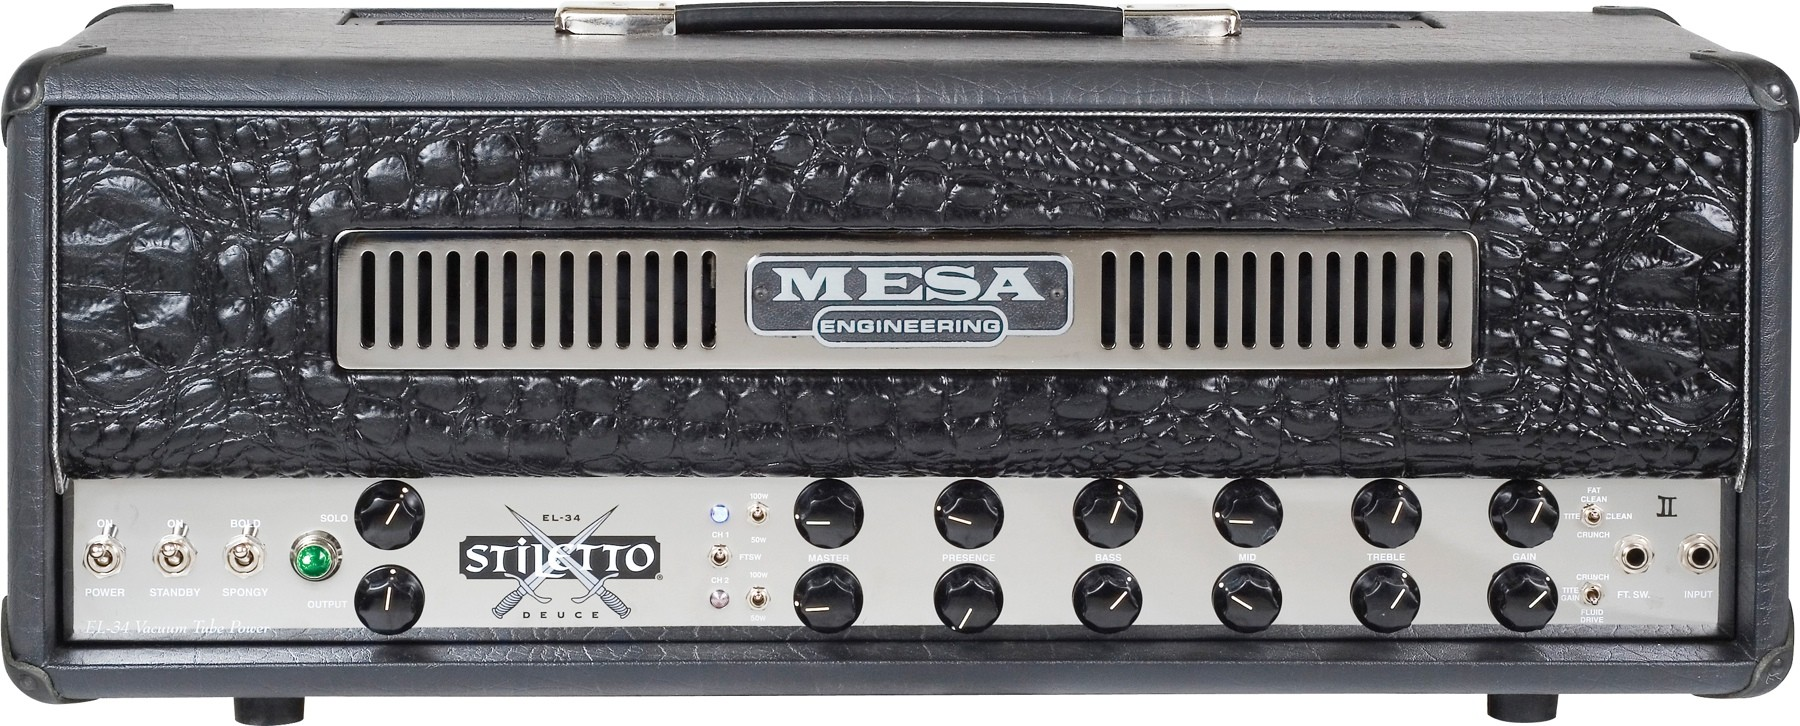 Mesa Stiletto Deuce Stage II - Tube Kit